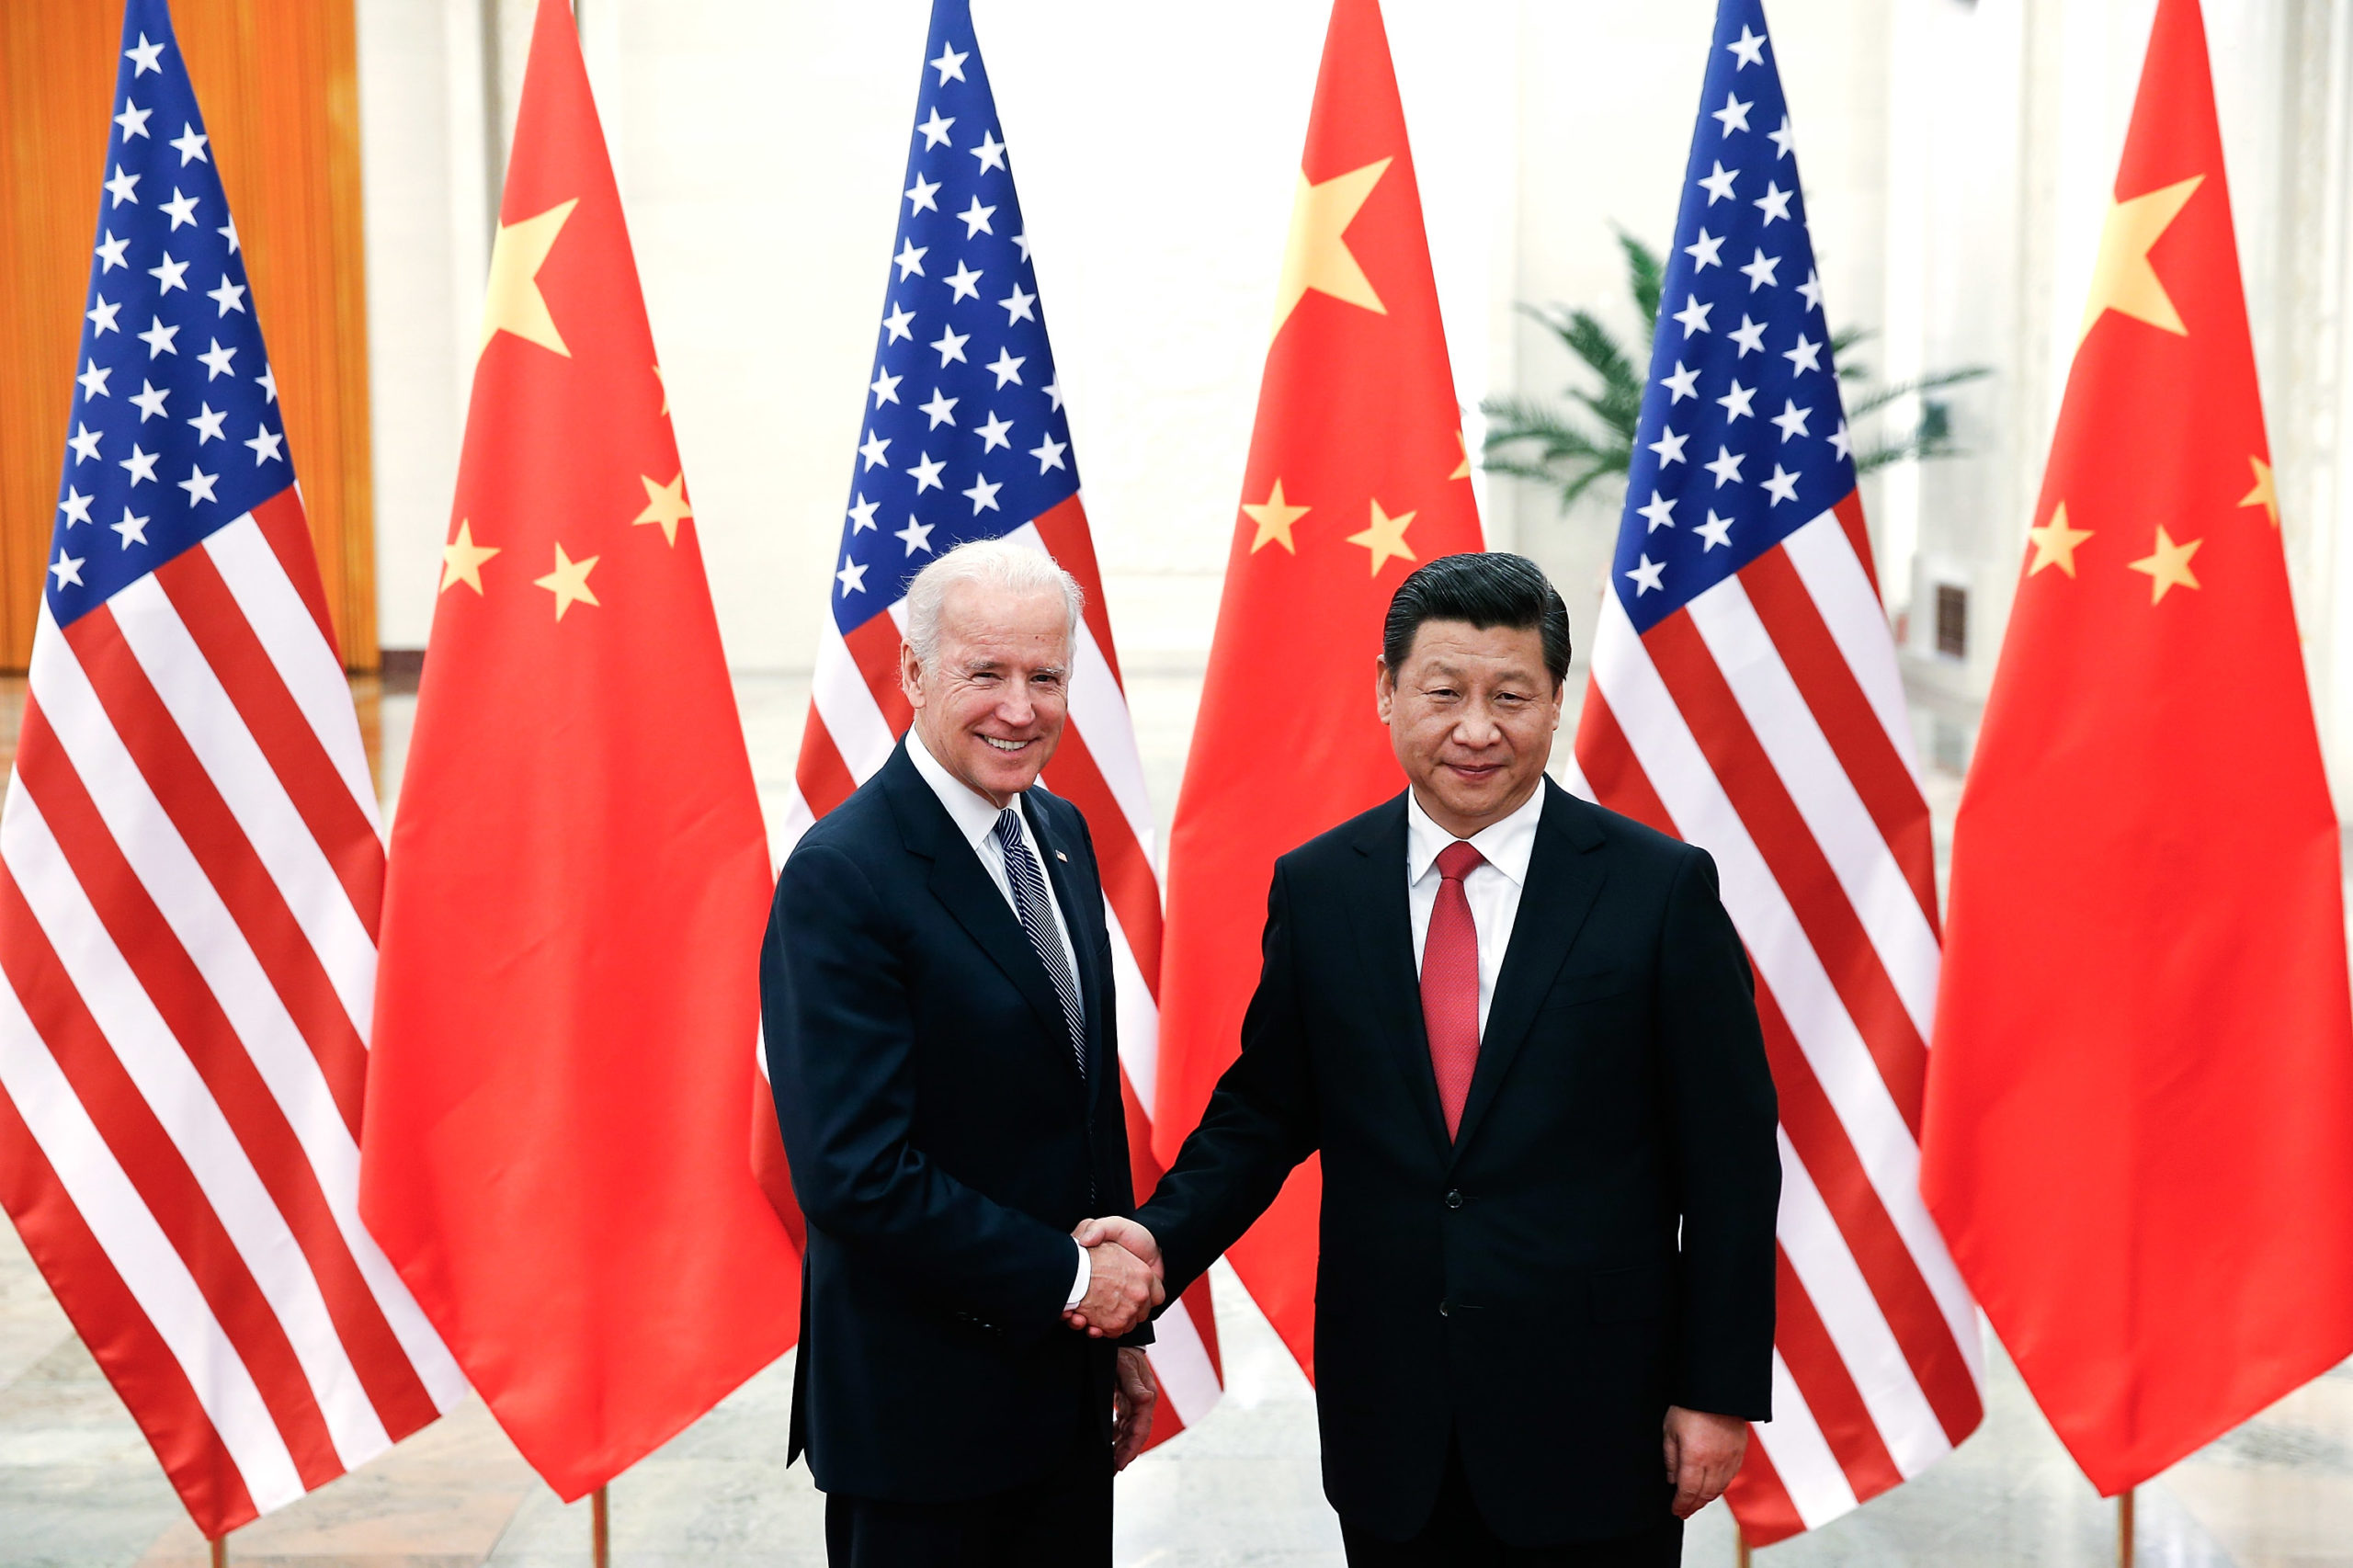 BEIJING, CHINA - DECEMBER 04: Chinese President Xi Jinping (R) shake hands with U.S Vice President Joe Biden (L) inside the Great Hall of the People on December 4, 2013 in Beijing, China. (Photo by Lintao Zhang/Getty Images)